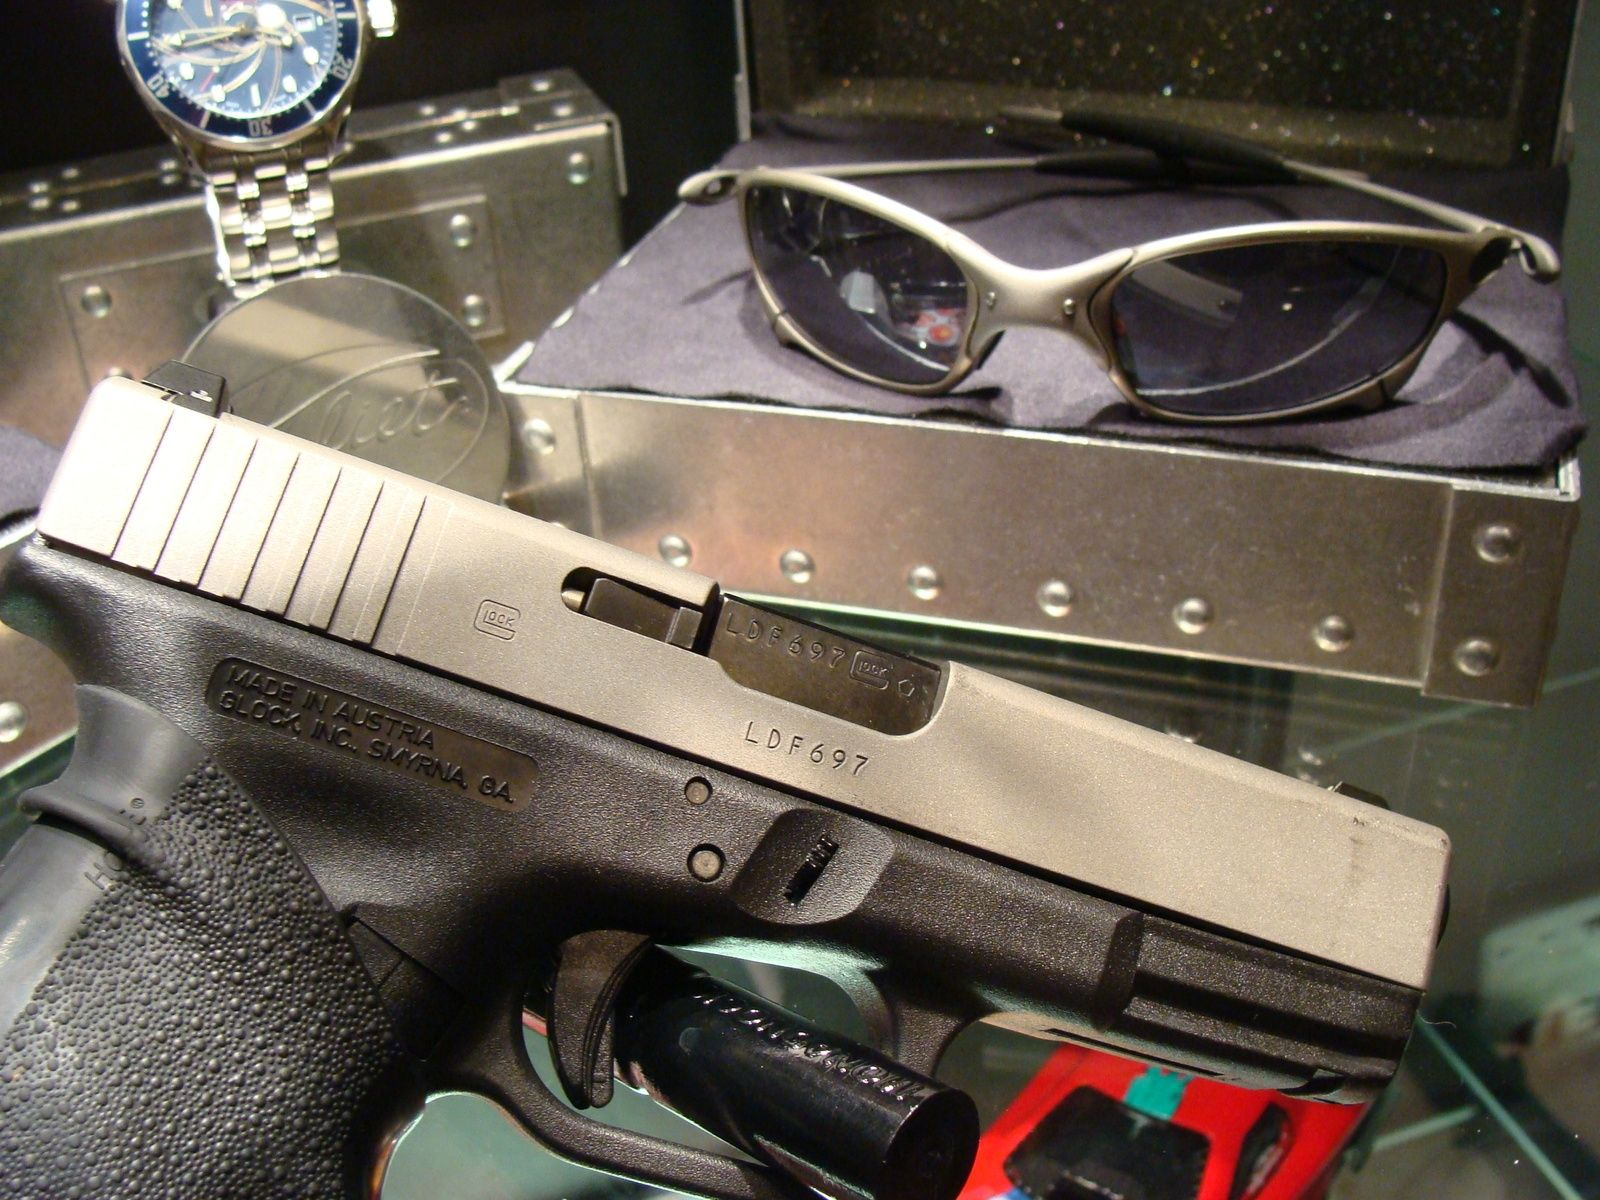 GLOCK Ti-02, And Other Ti-02 Collection  (XMAN) - DSC04865.JPG